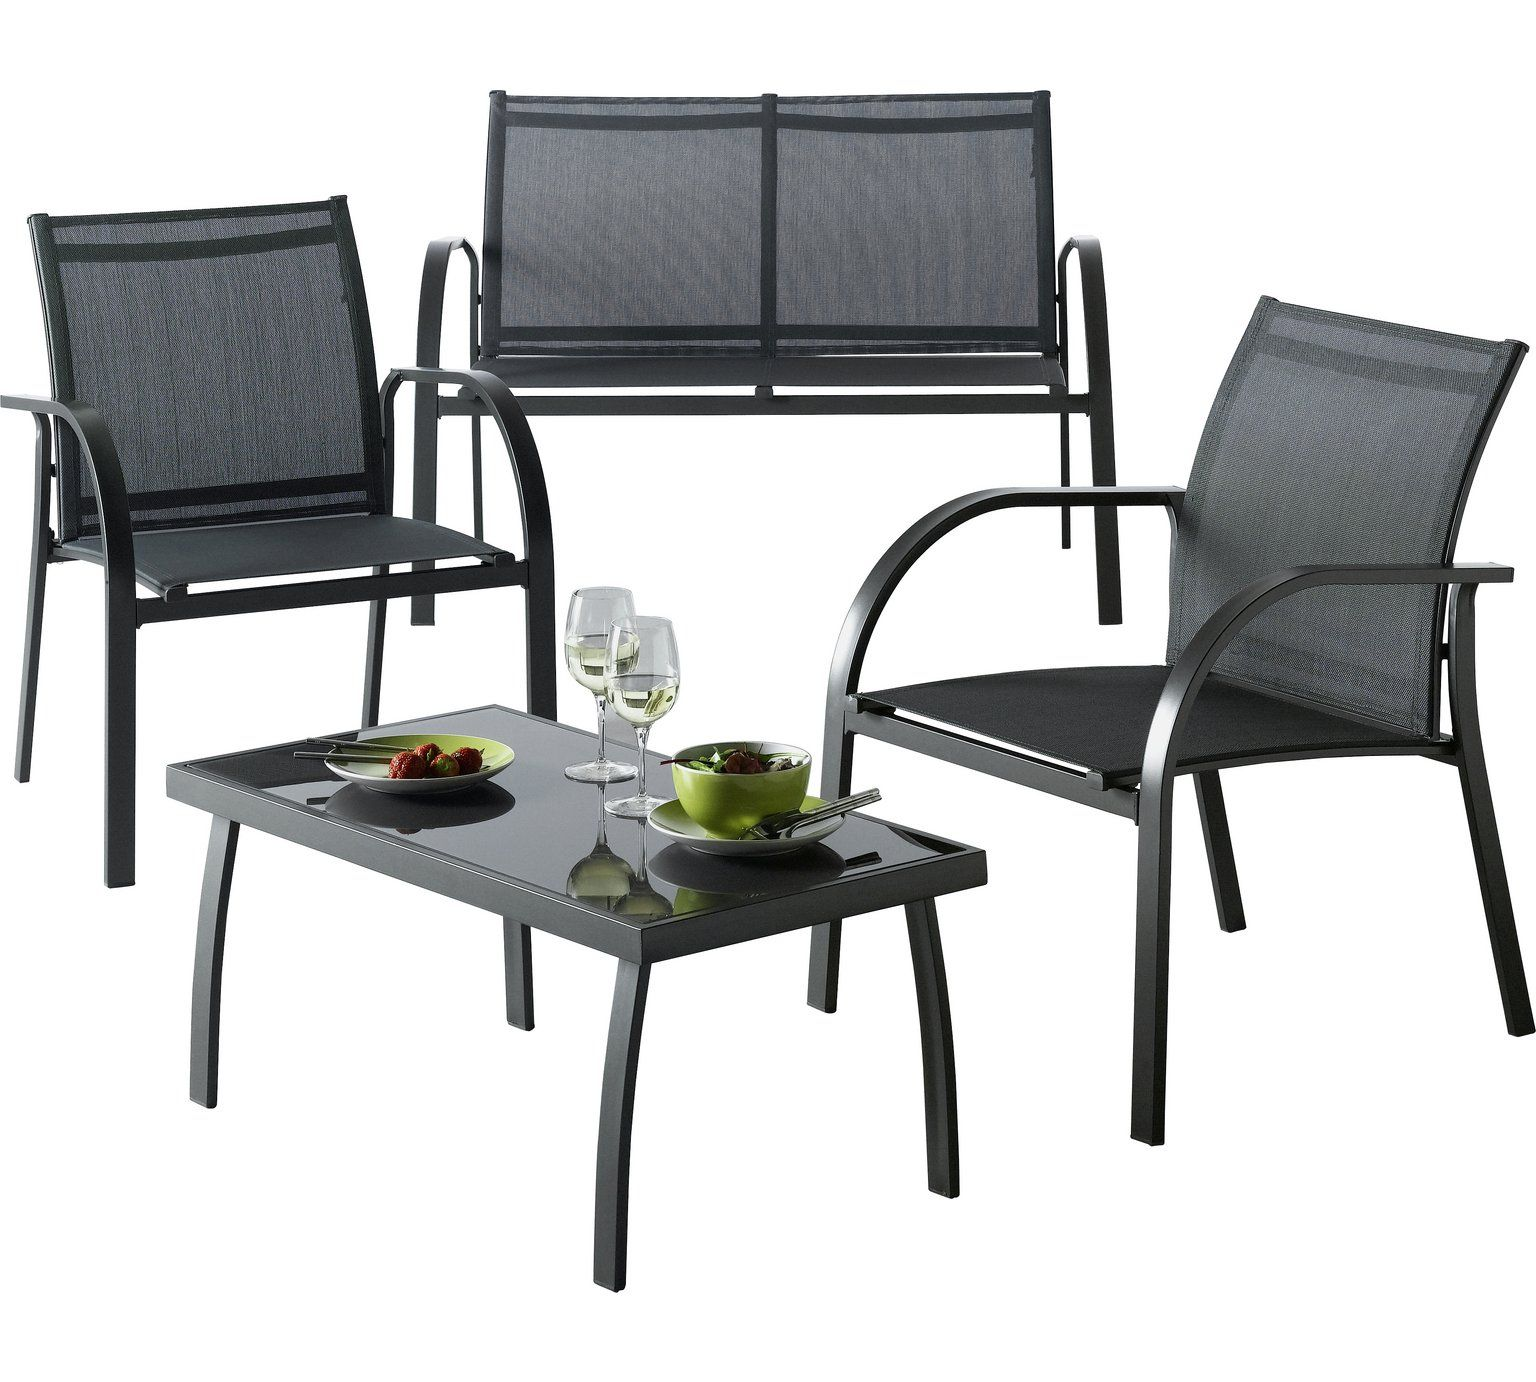 Buy Home Milan 4 Seater Metal Sofa Set At Argos Co Uk Your Online Shop For Limited Stock Home And Garden Limited Stock Clearance Sandalye - Garden Furniture Clearance Argos